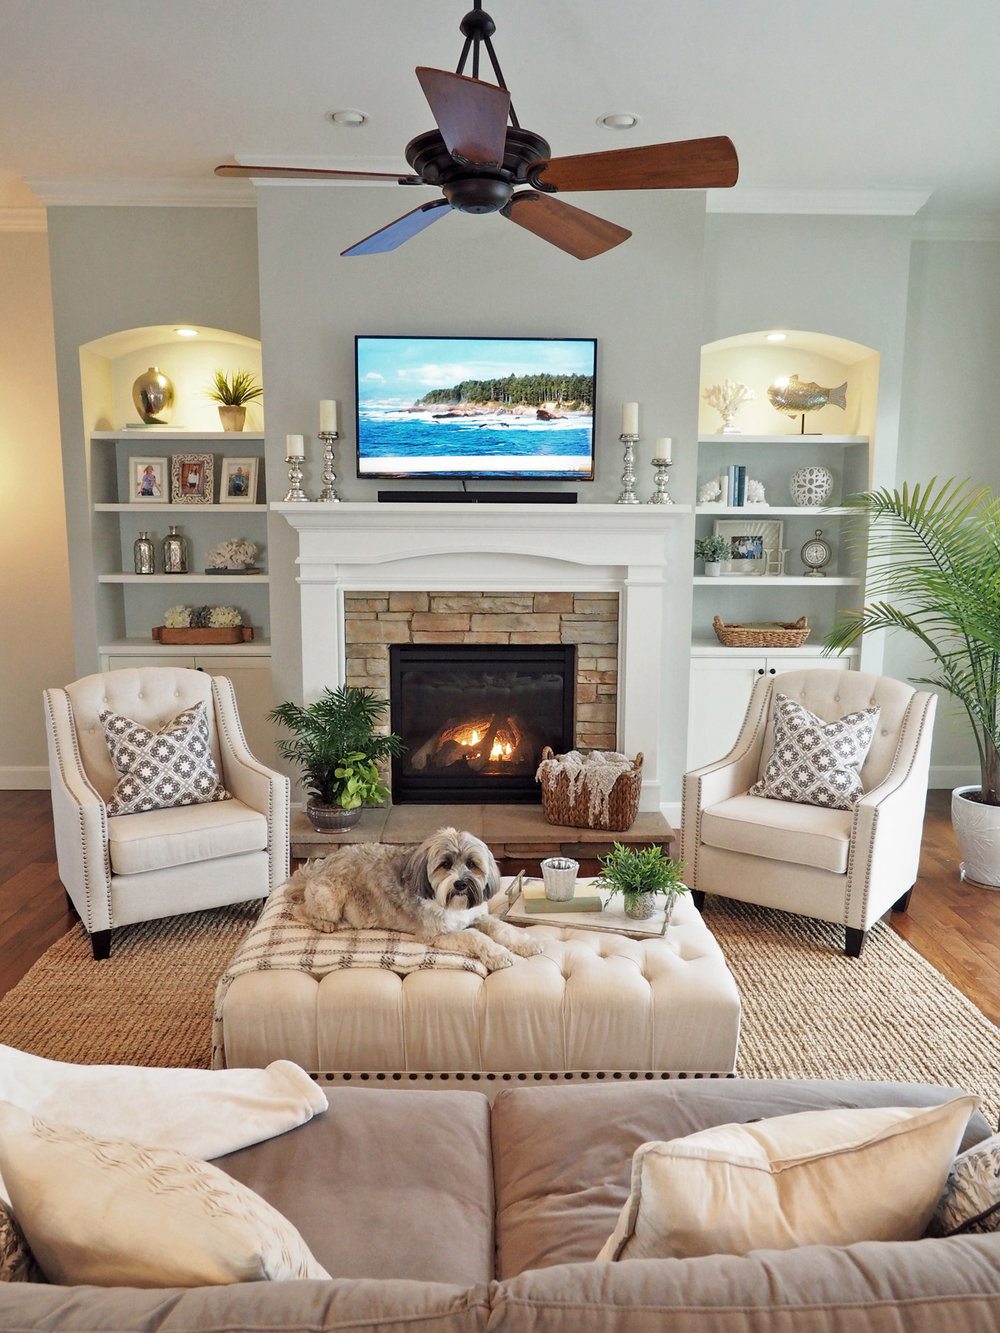 This photo is the perfect example of the seasonal changes! I took this on a gray winter's day with clouds and a light dusting of snow on the ground. Look how different the Conservative Gray appears on the fireplace and shelving walls. It is a deeper gray/blue/green as compared to the daytime summer photo.